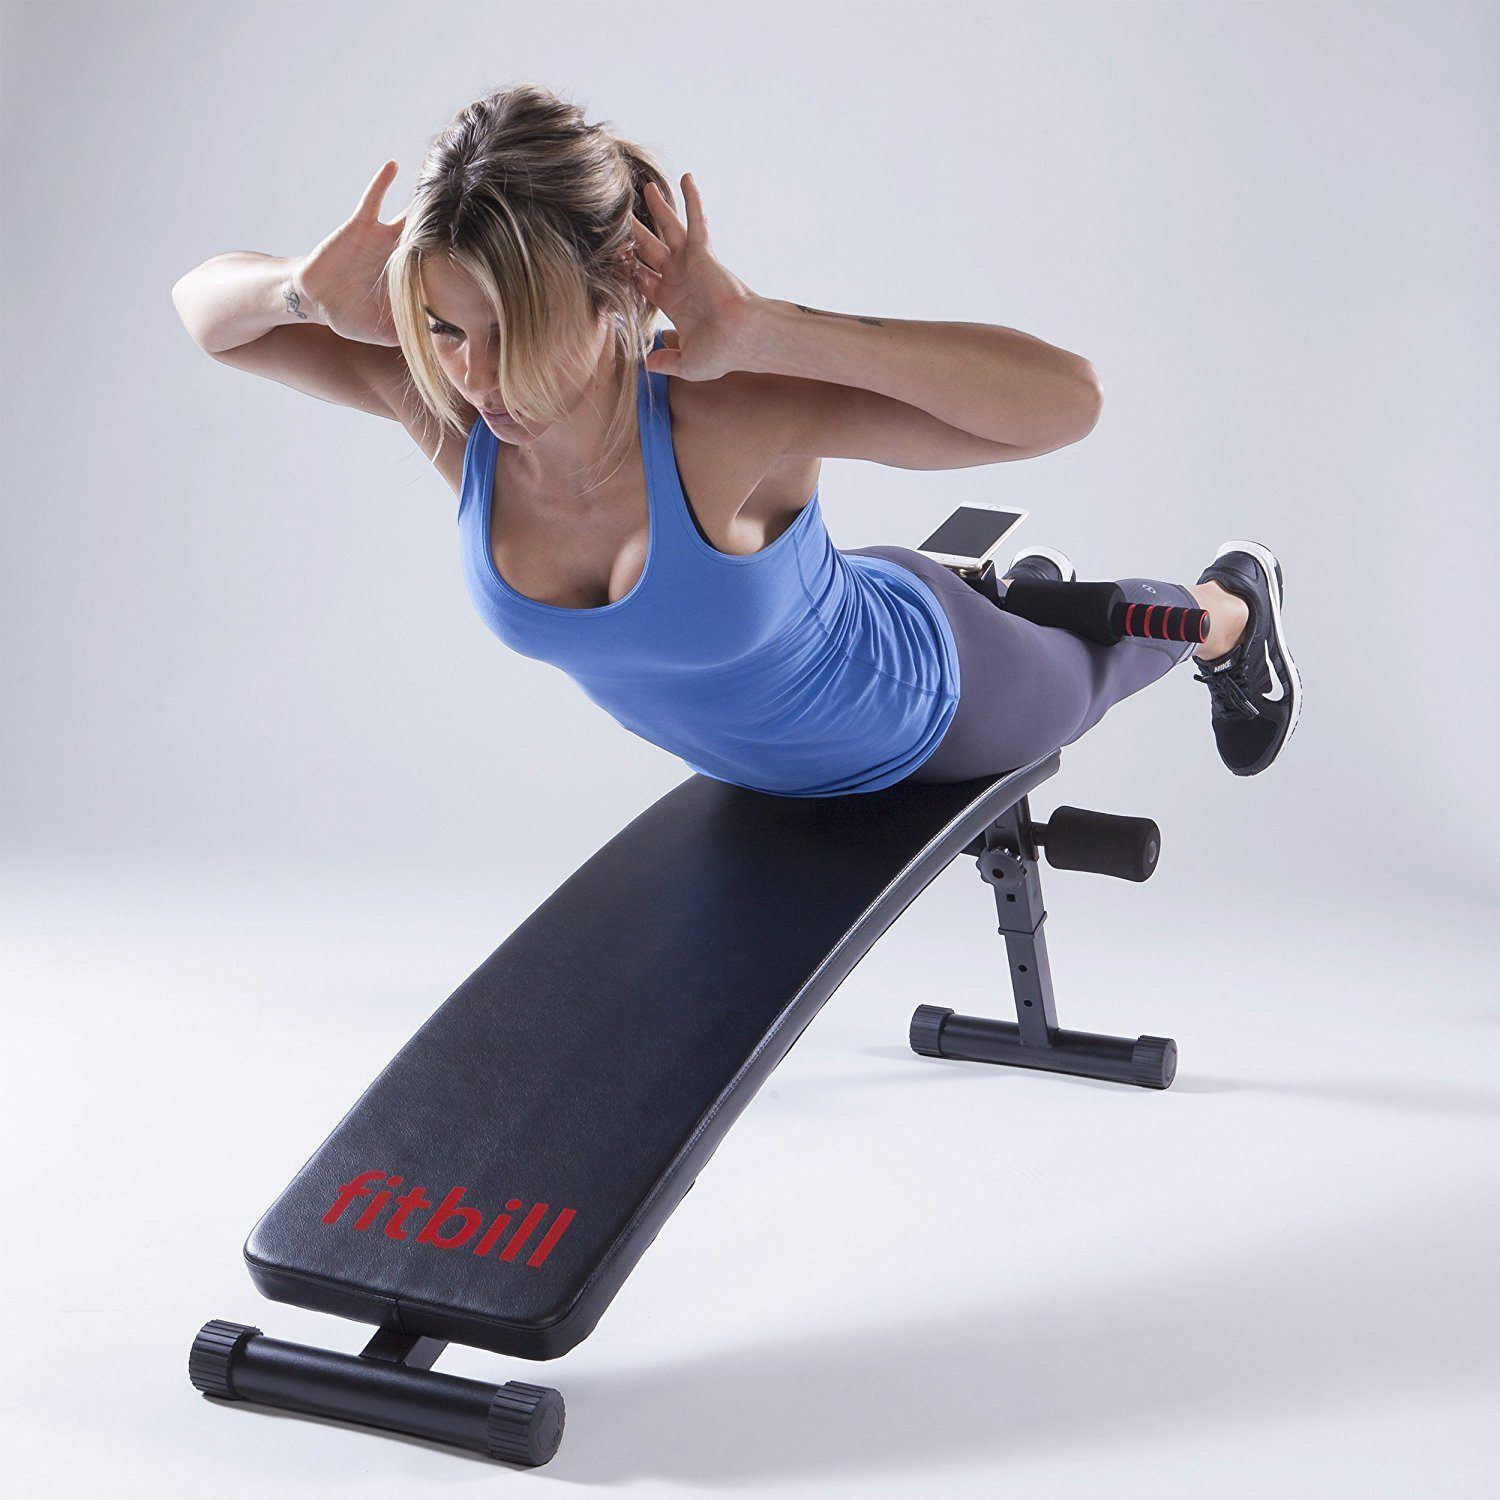 If You Want To Buy The Best Weight Bench For Home U0026 Gym. I Have Written  Here The Top Rated Weight Bench Reviews By Considering The Features, And  Prices.